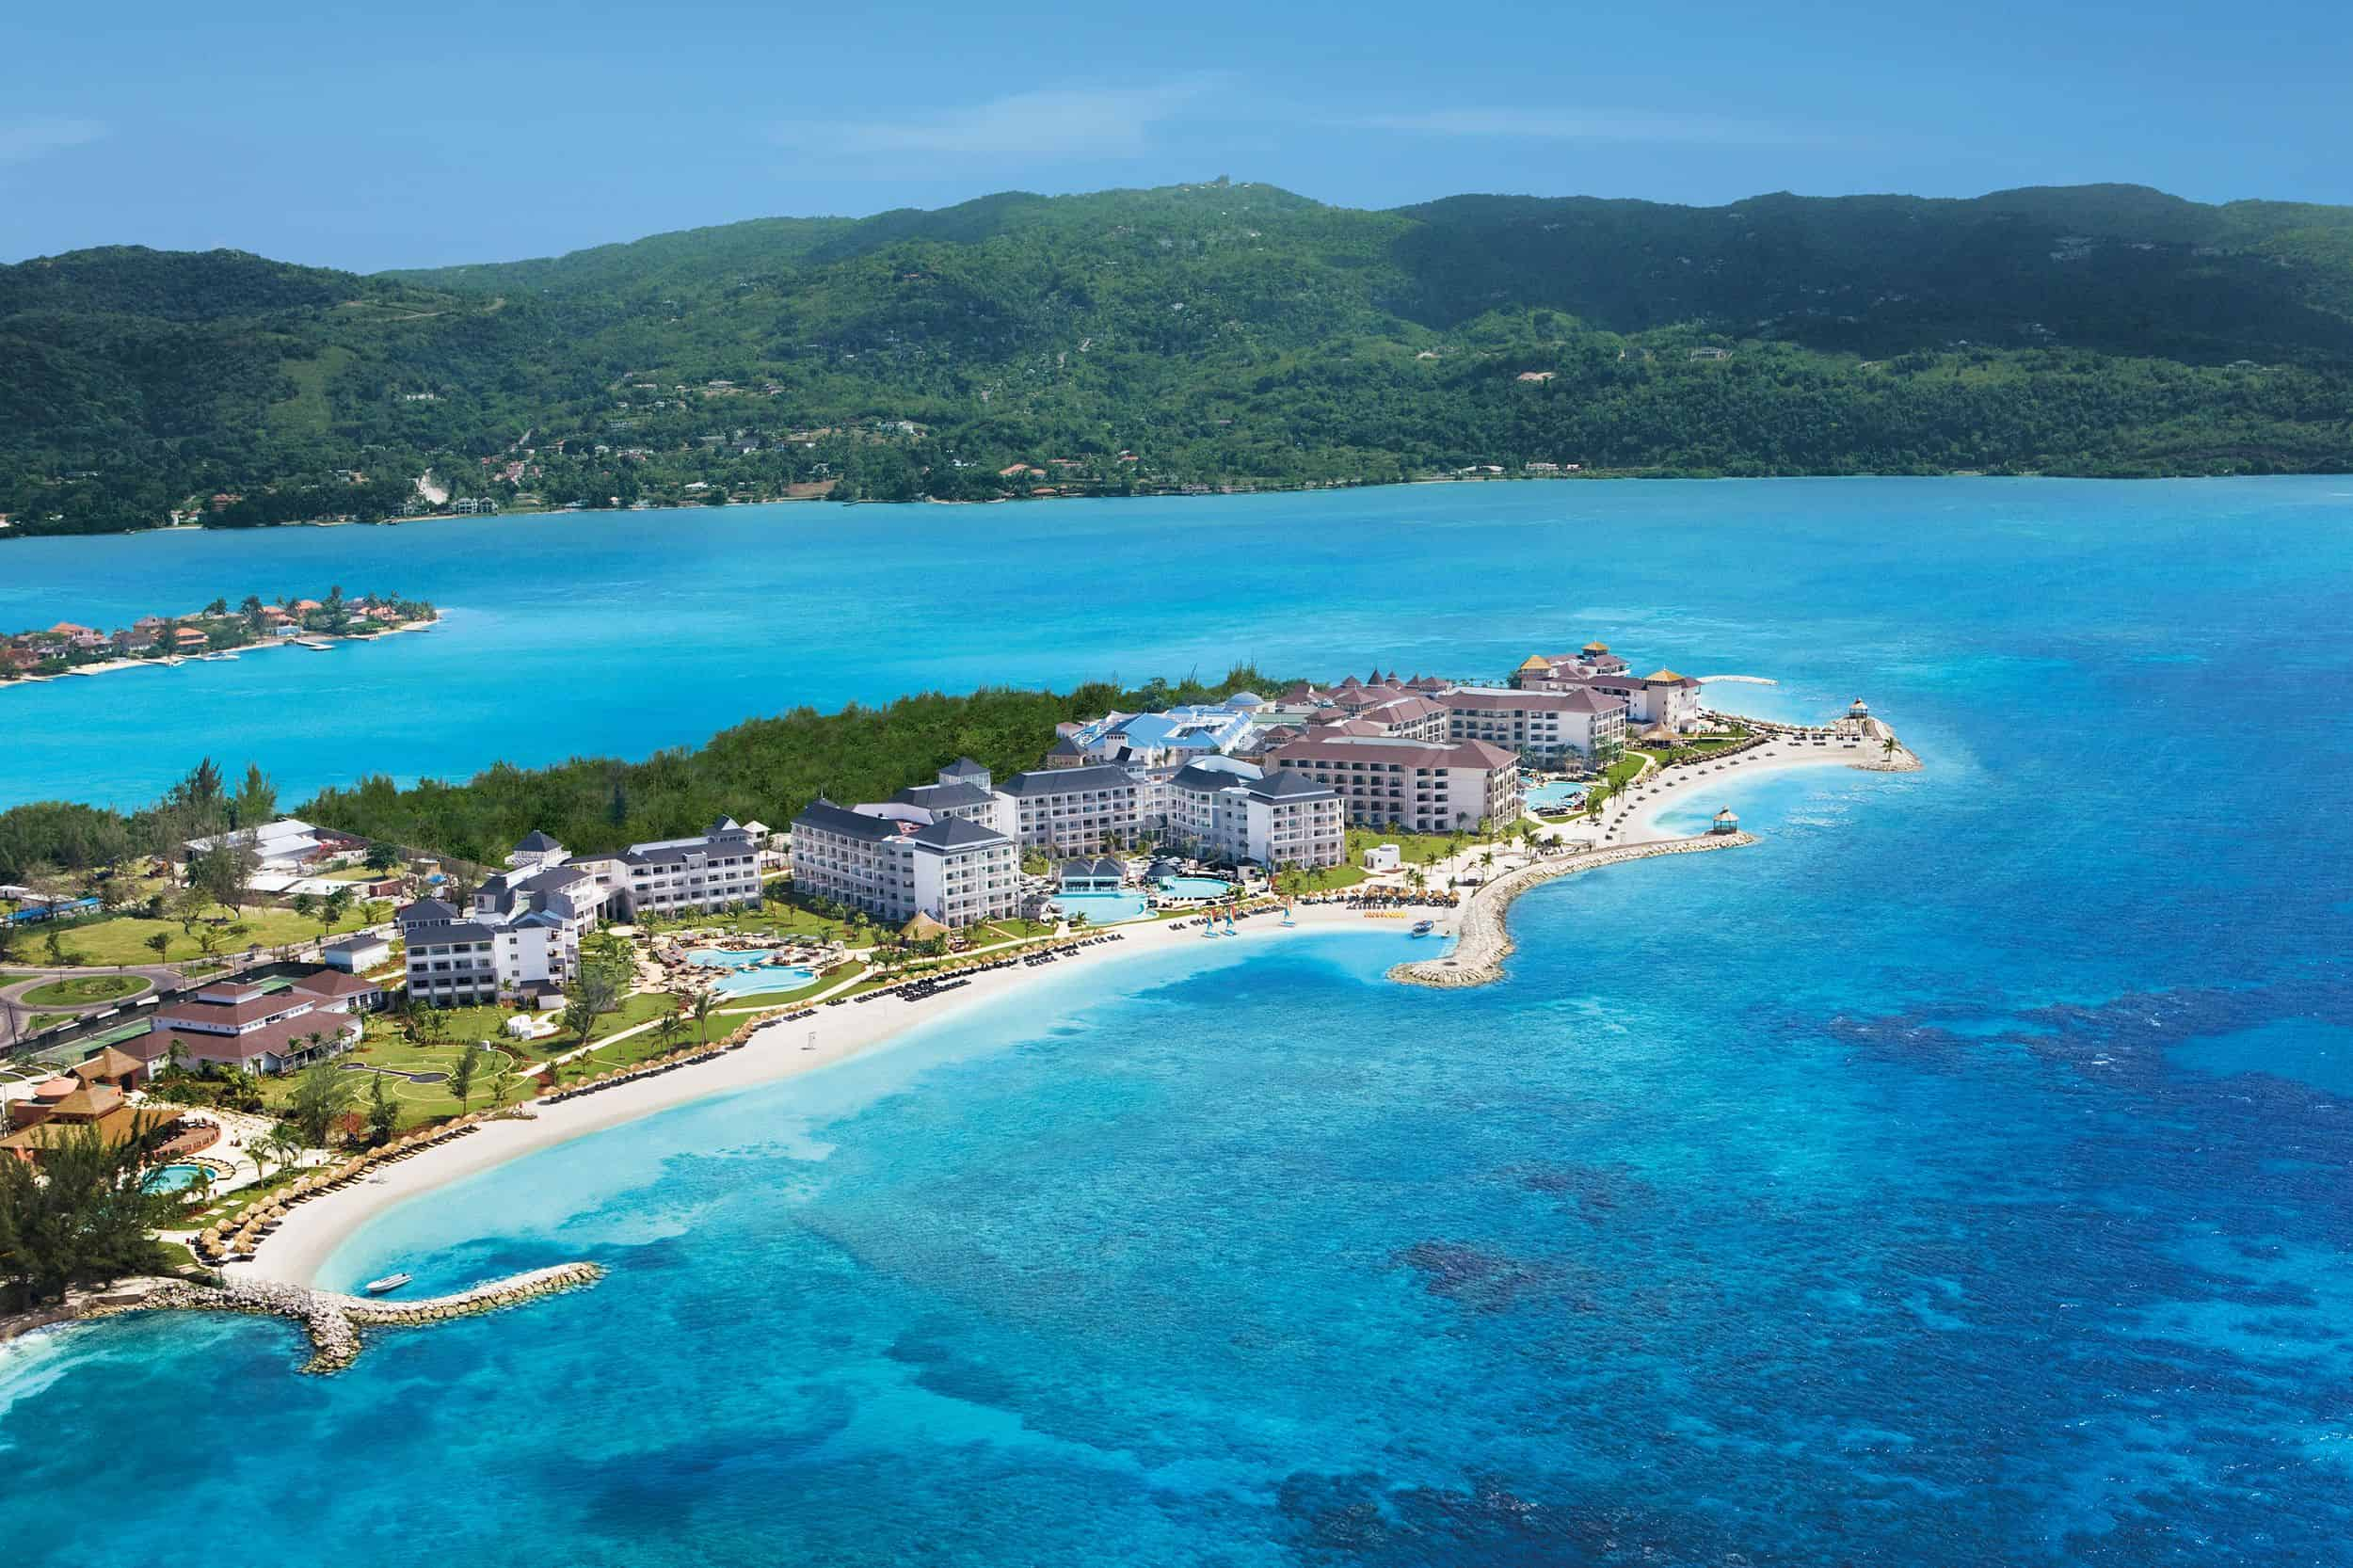 Image of luxury beach resort in Jamaica